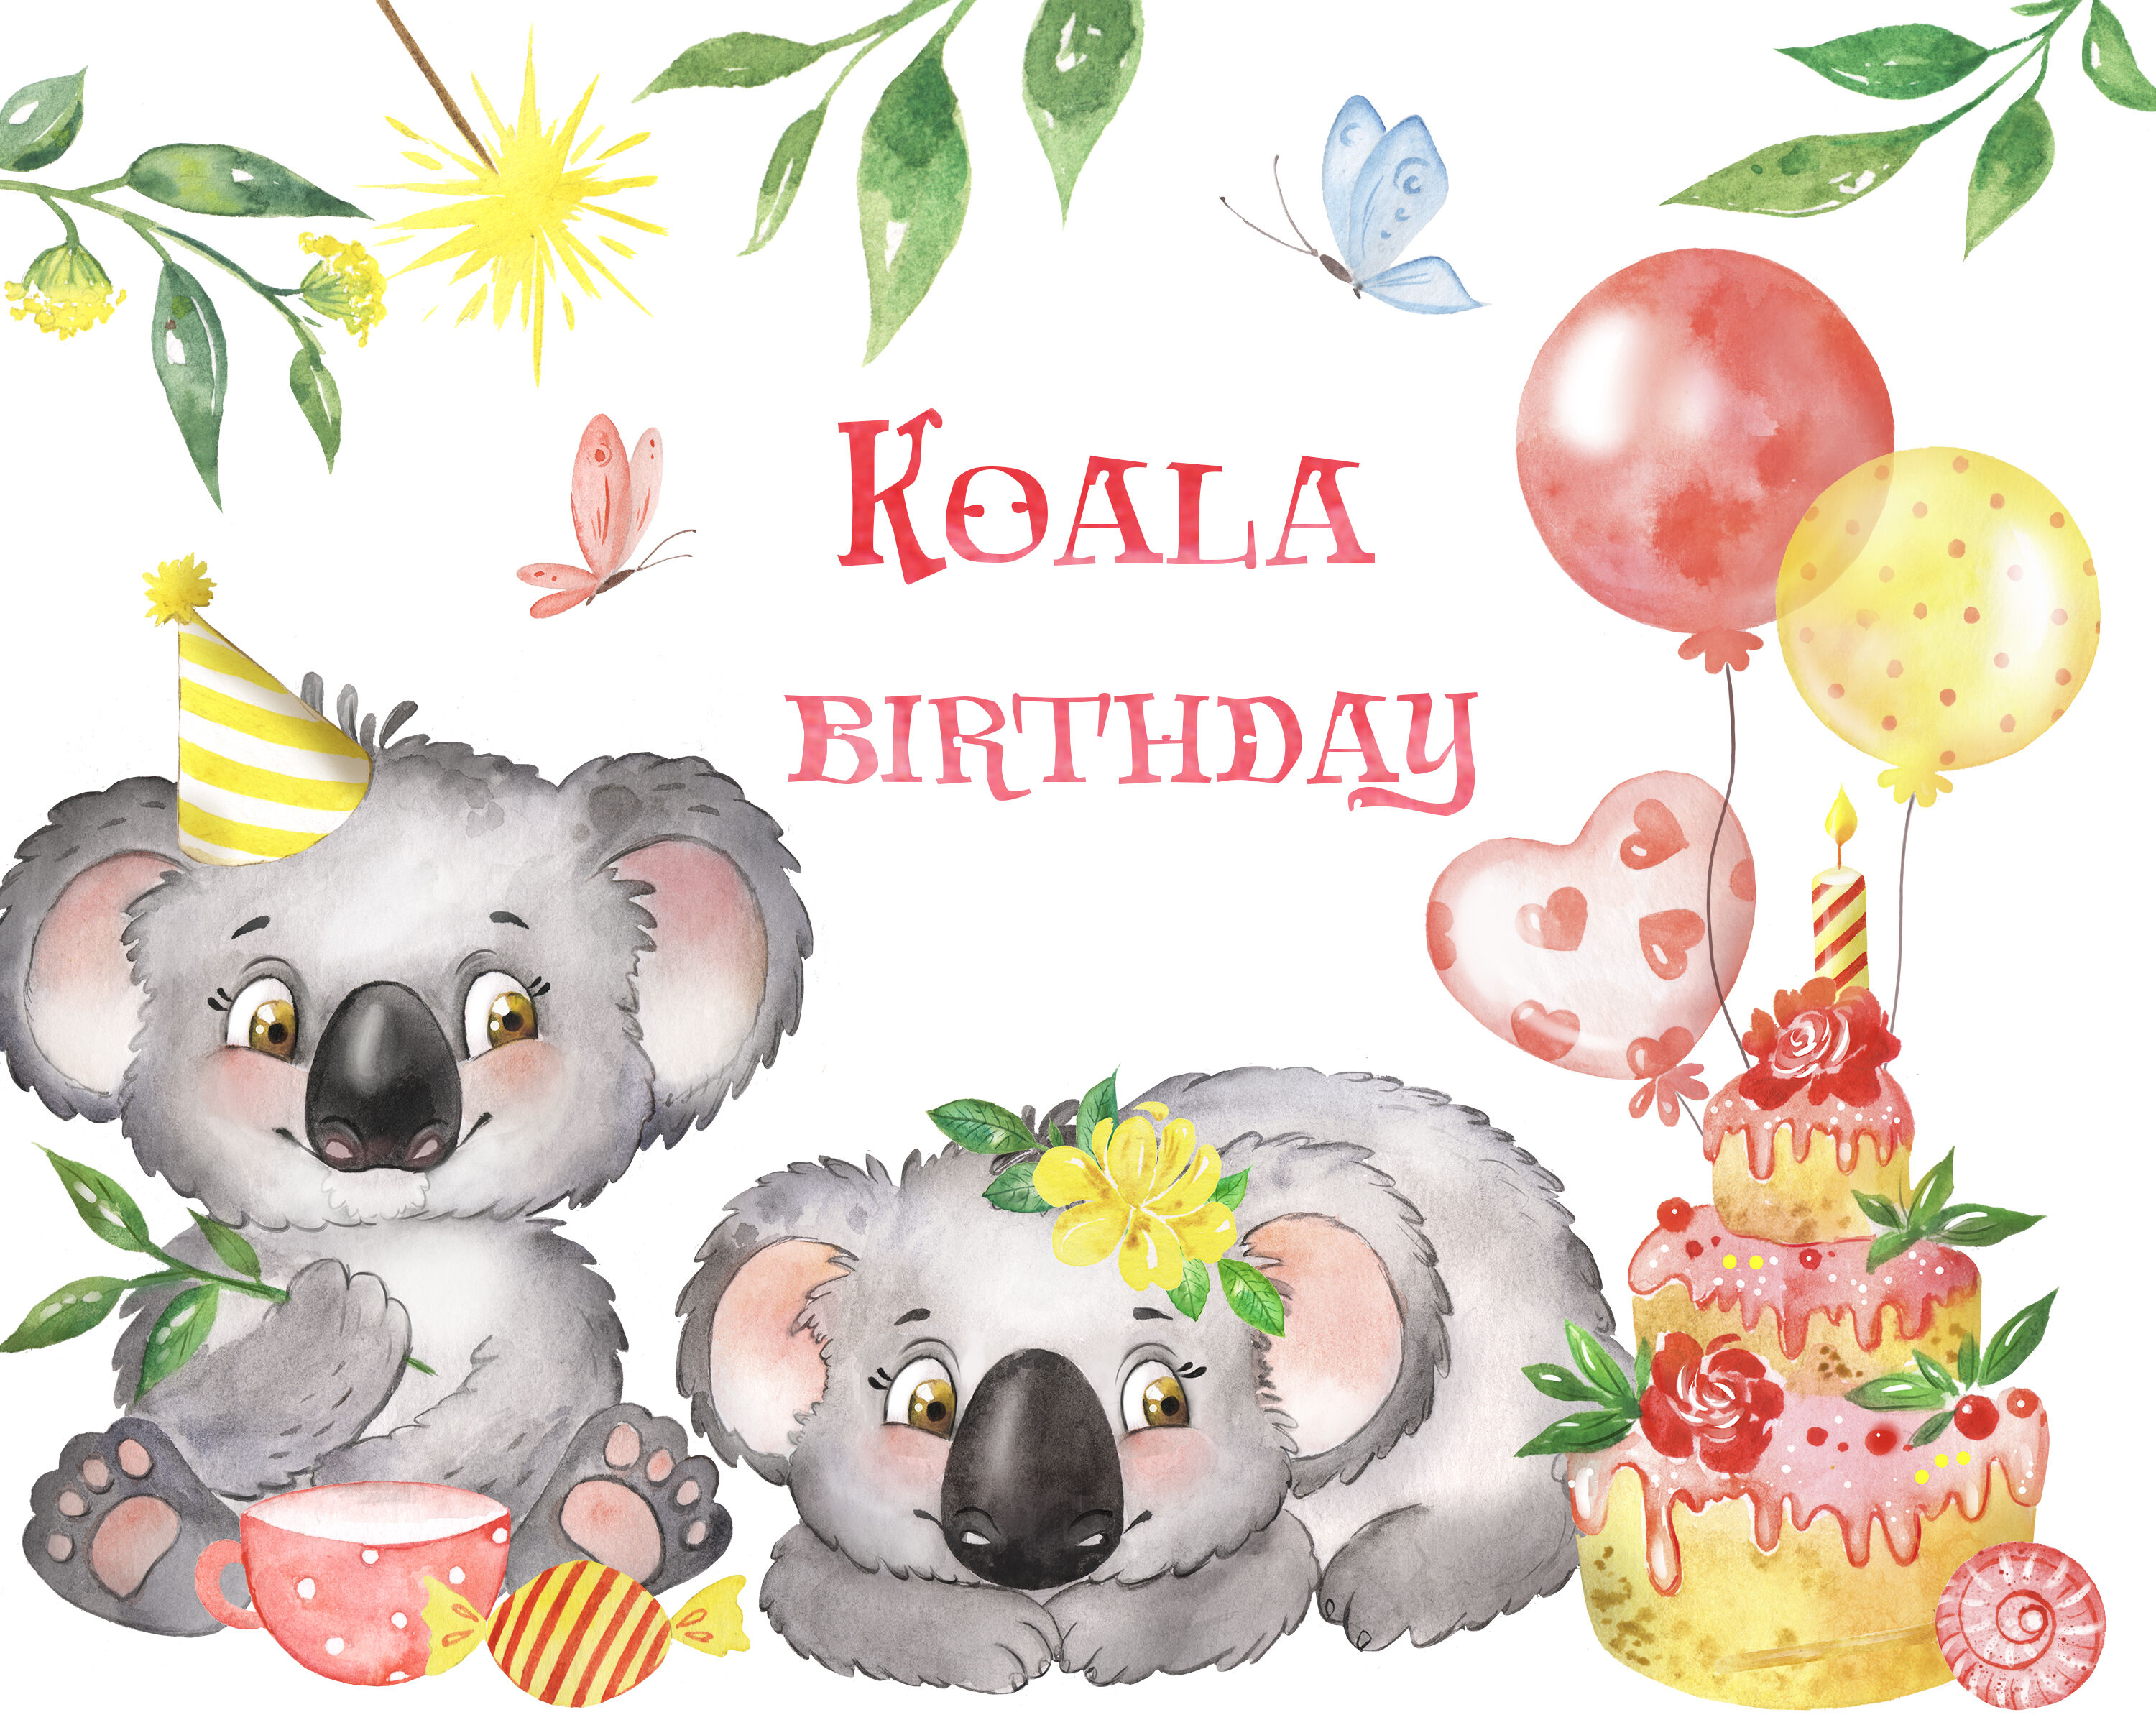 Magnificent Koala Watercolor Clipart With Koalas Birthday Clipart Cake Funny Birthday Cards Online Bapapcheapnameinfo